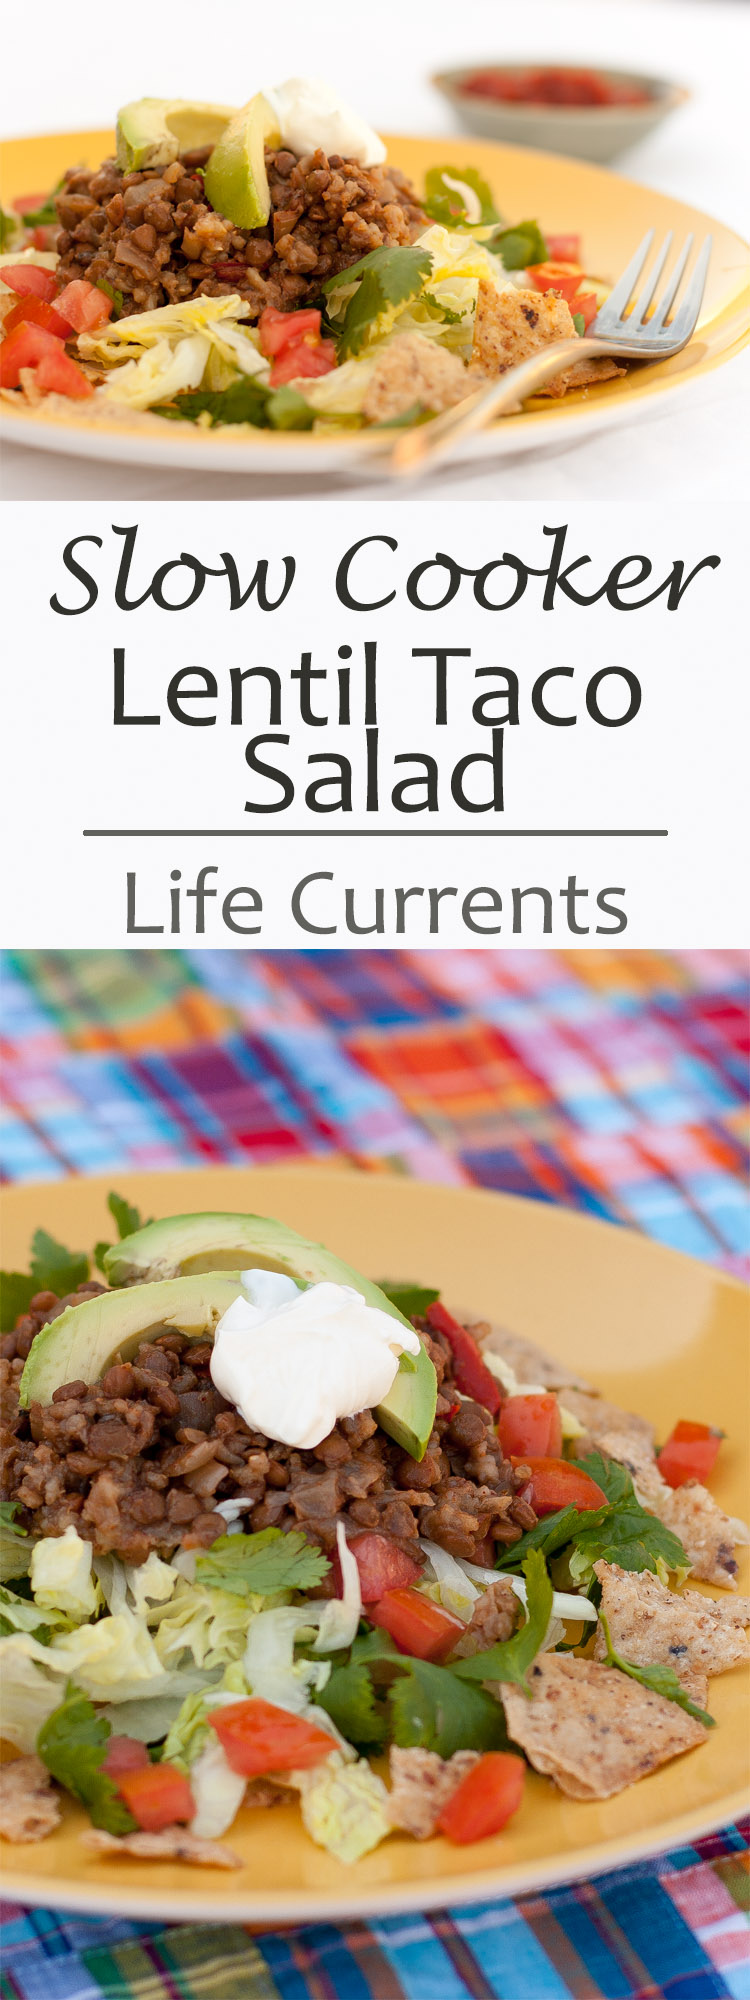 A delicious and easy recipe for Slow Cooker Vegetarian Lentil Taco Salad that you'll love!